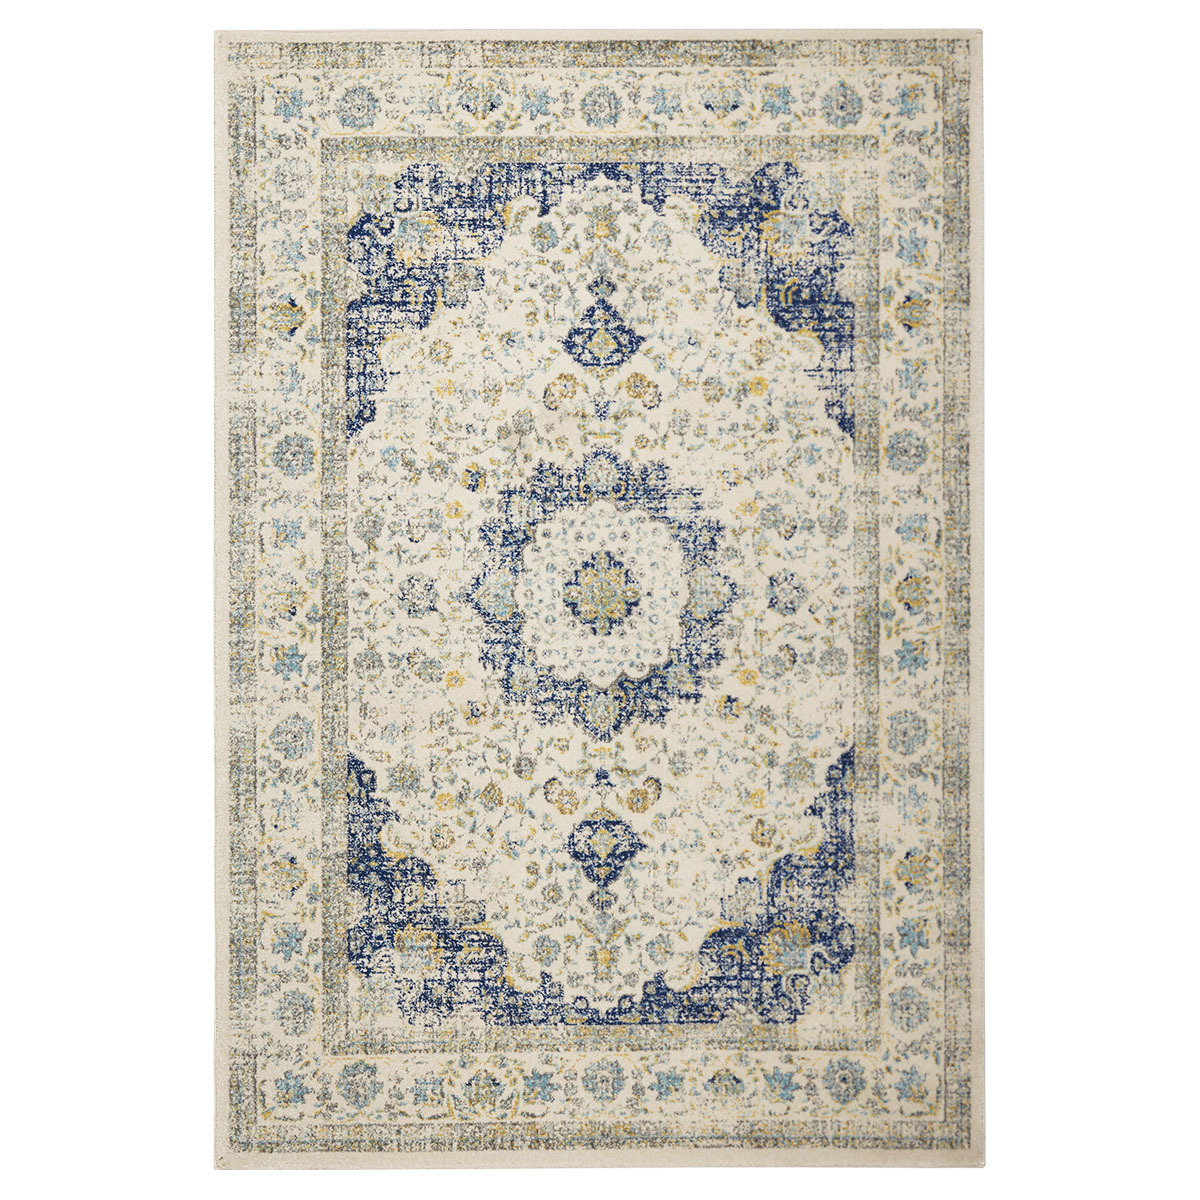 Vintage-inspired rug with a blue and ivory persian-inspired motif. photo